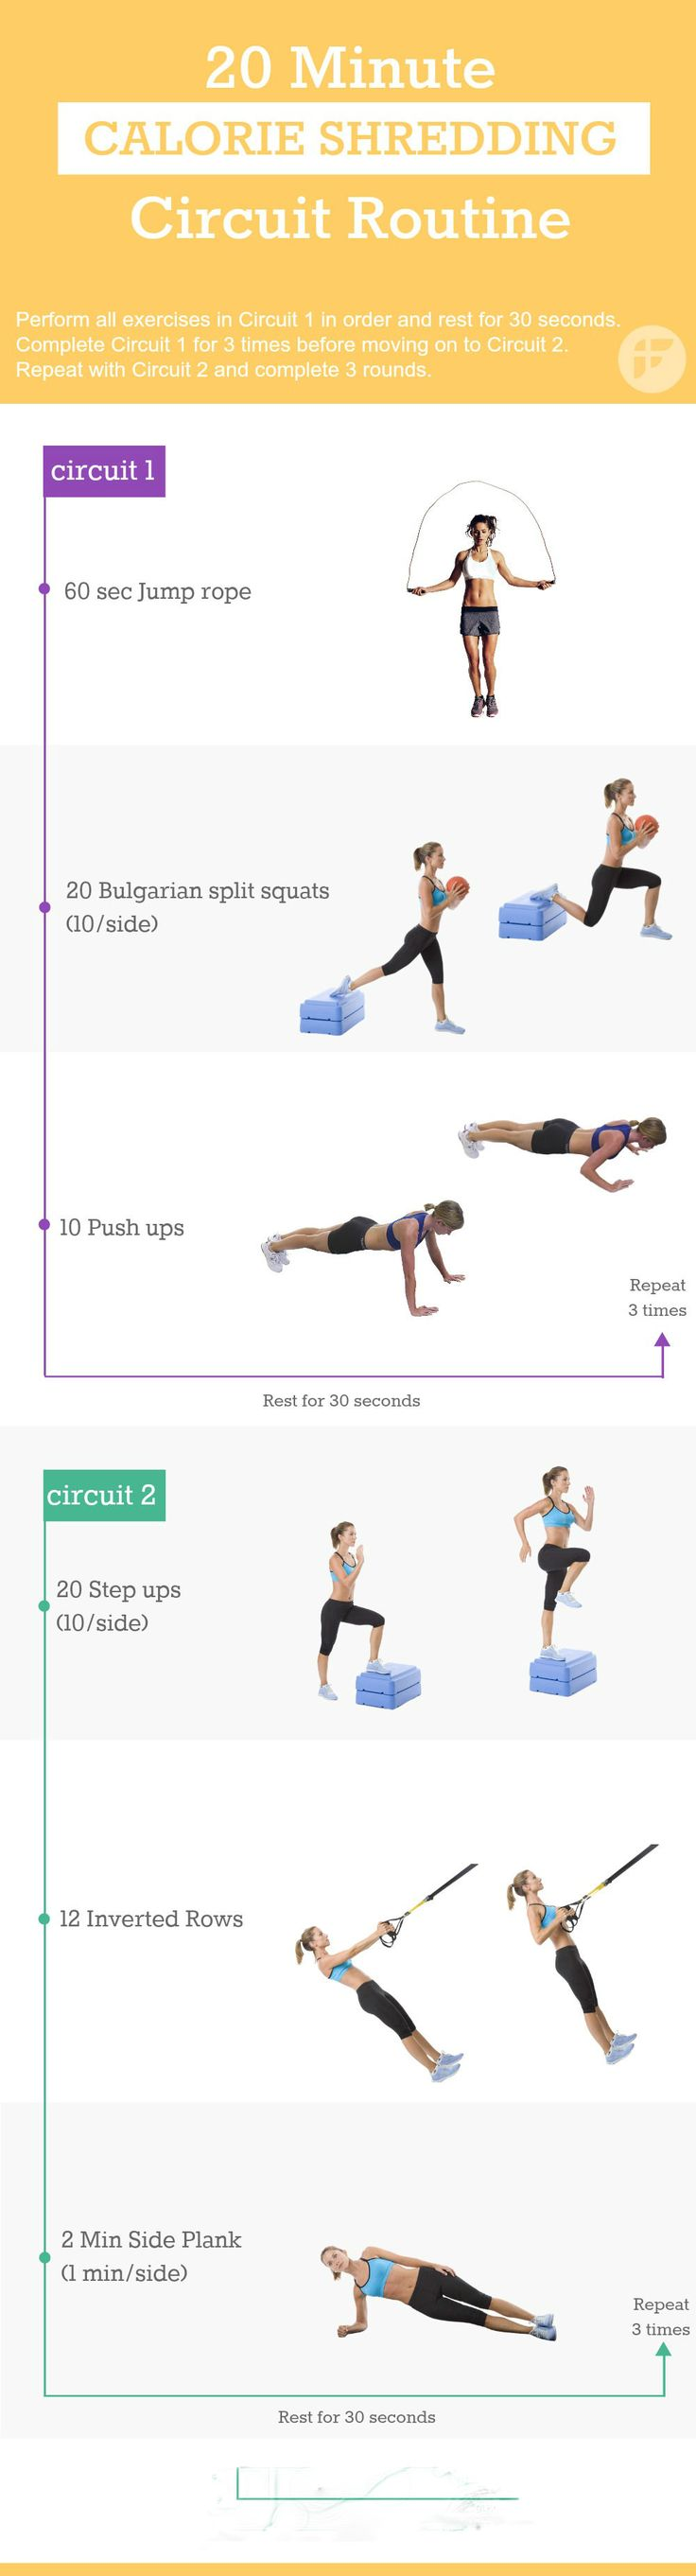 Getting in shape doesn't have to be complicated or expensive. It can be quite simple and free. Bodyweight training can be very effective for gaining strength, improving flexibility, and cardiovascular fitness. And without a doubt, it is the most convenient type ofstrength trainingyou can do to get in great physical shape at home or away. …